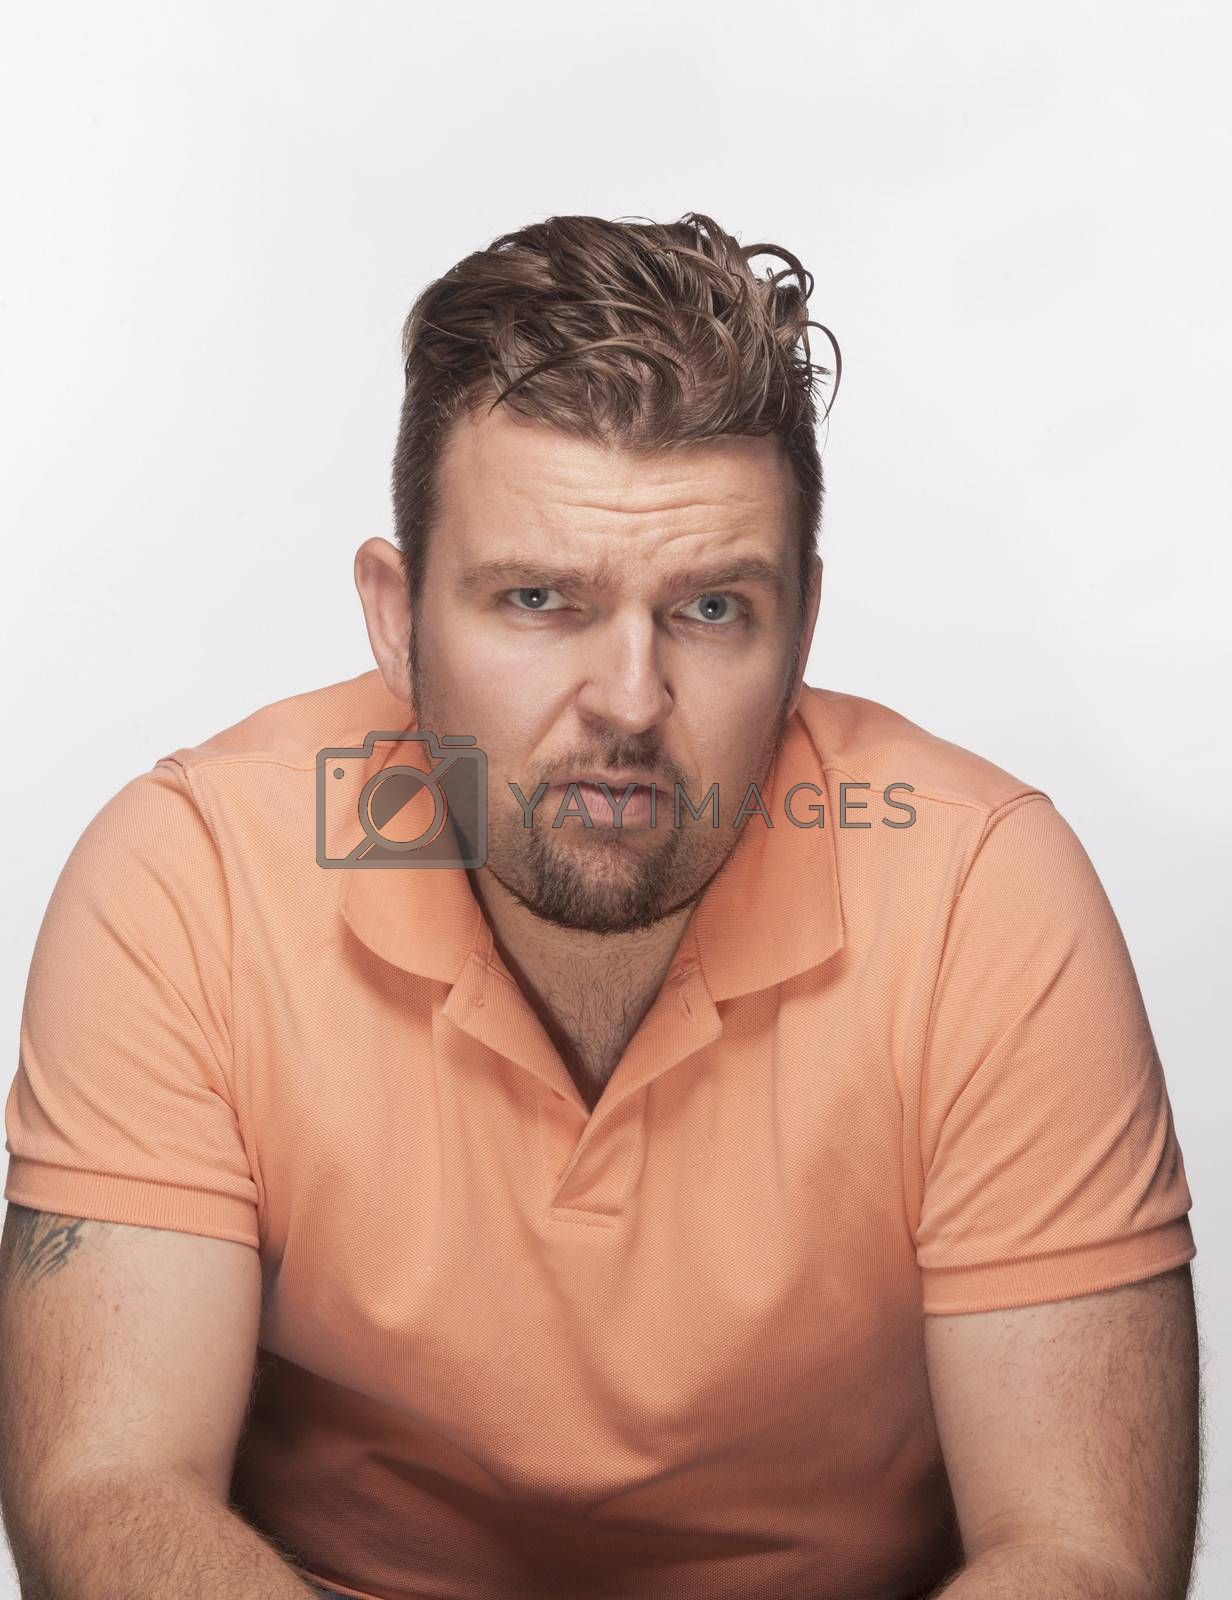 Serious man in orange shirt looking at camera, studio shot